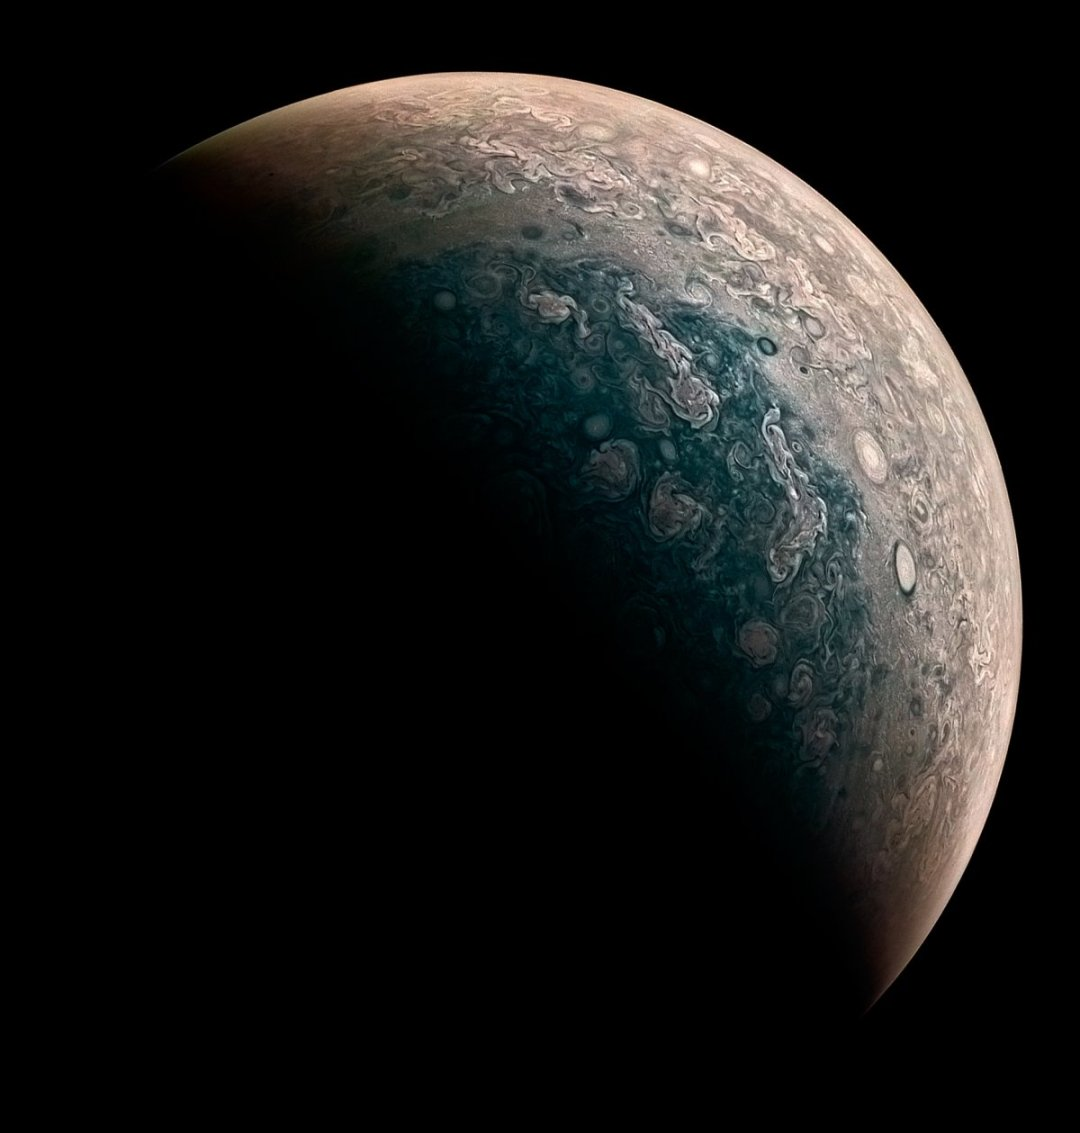 this-new-image-processed-by-amateur-astronomer-roman-tkachenko-shows-jupiters-north-pole-in-all-its-stormy-glory